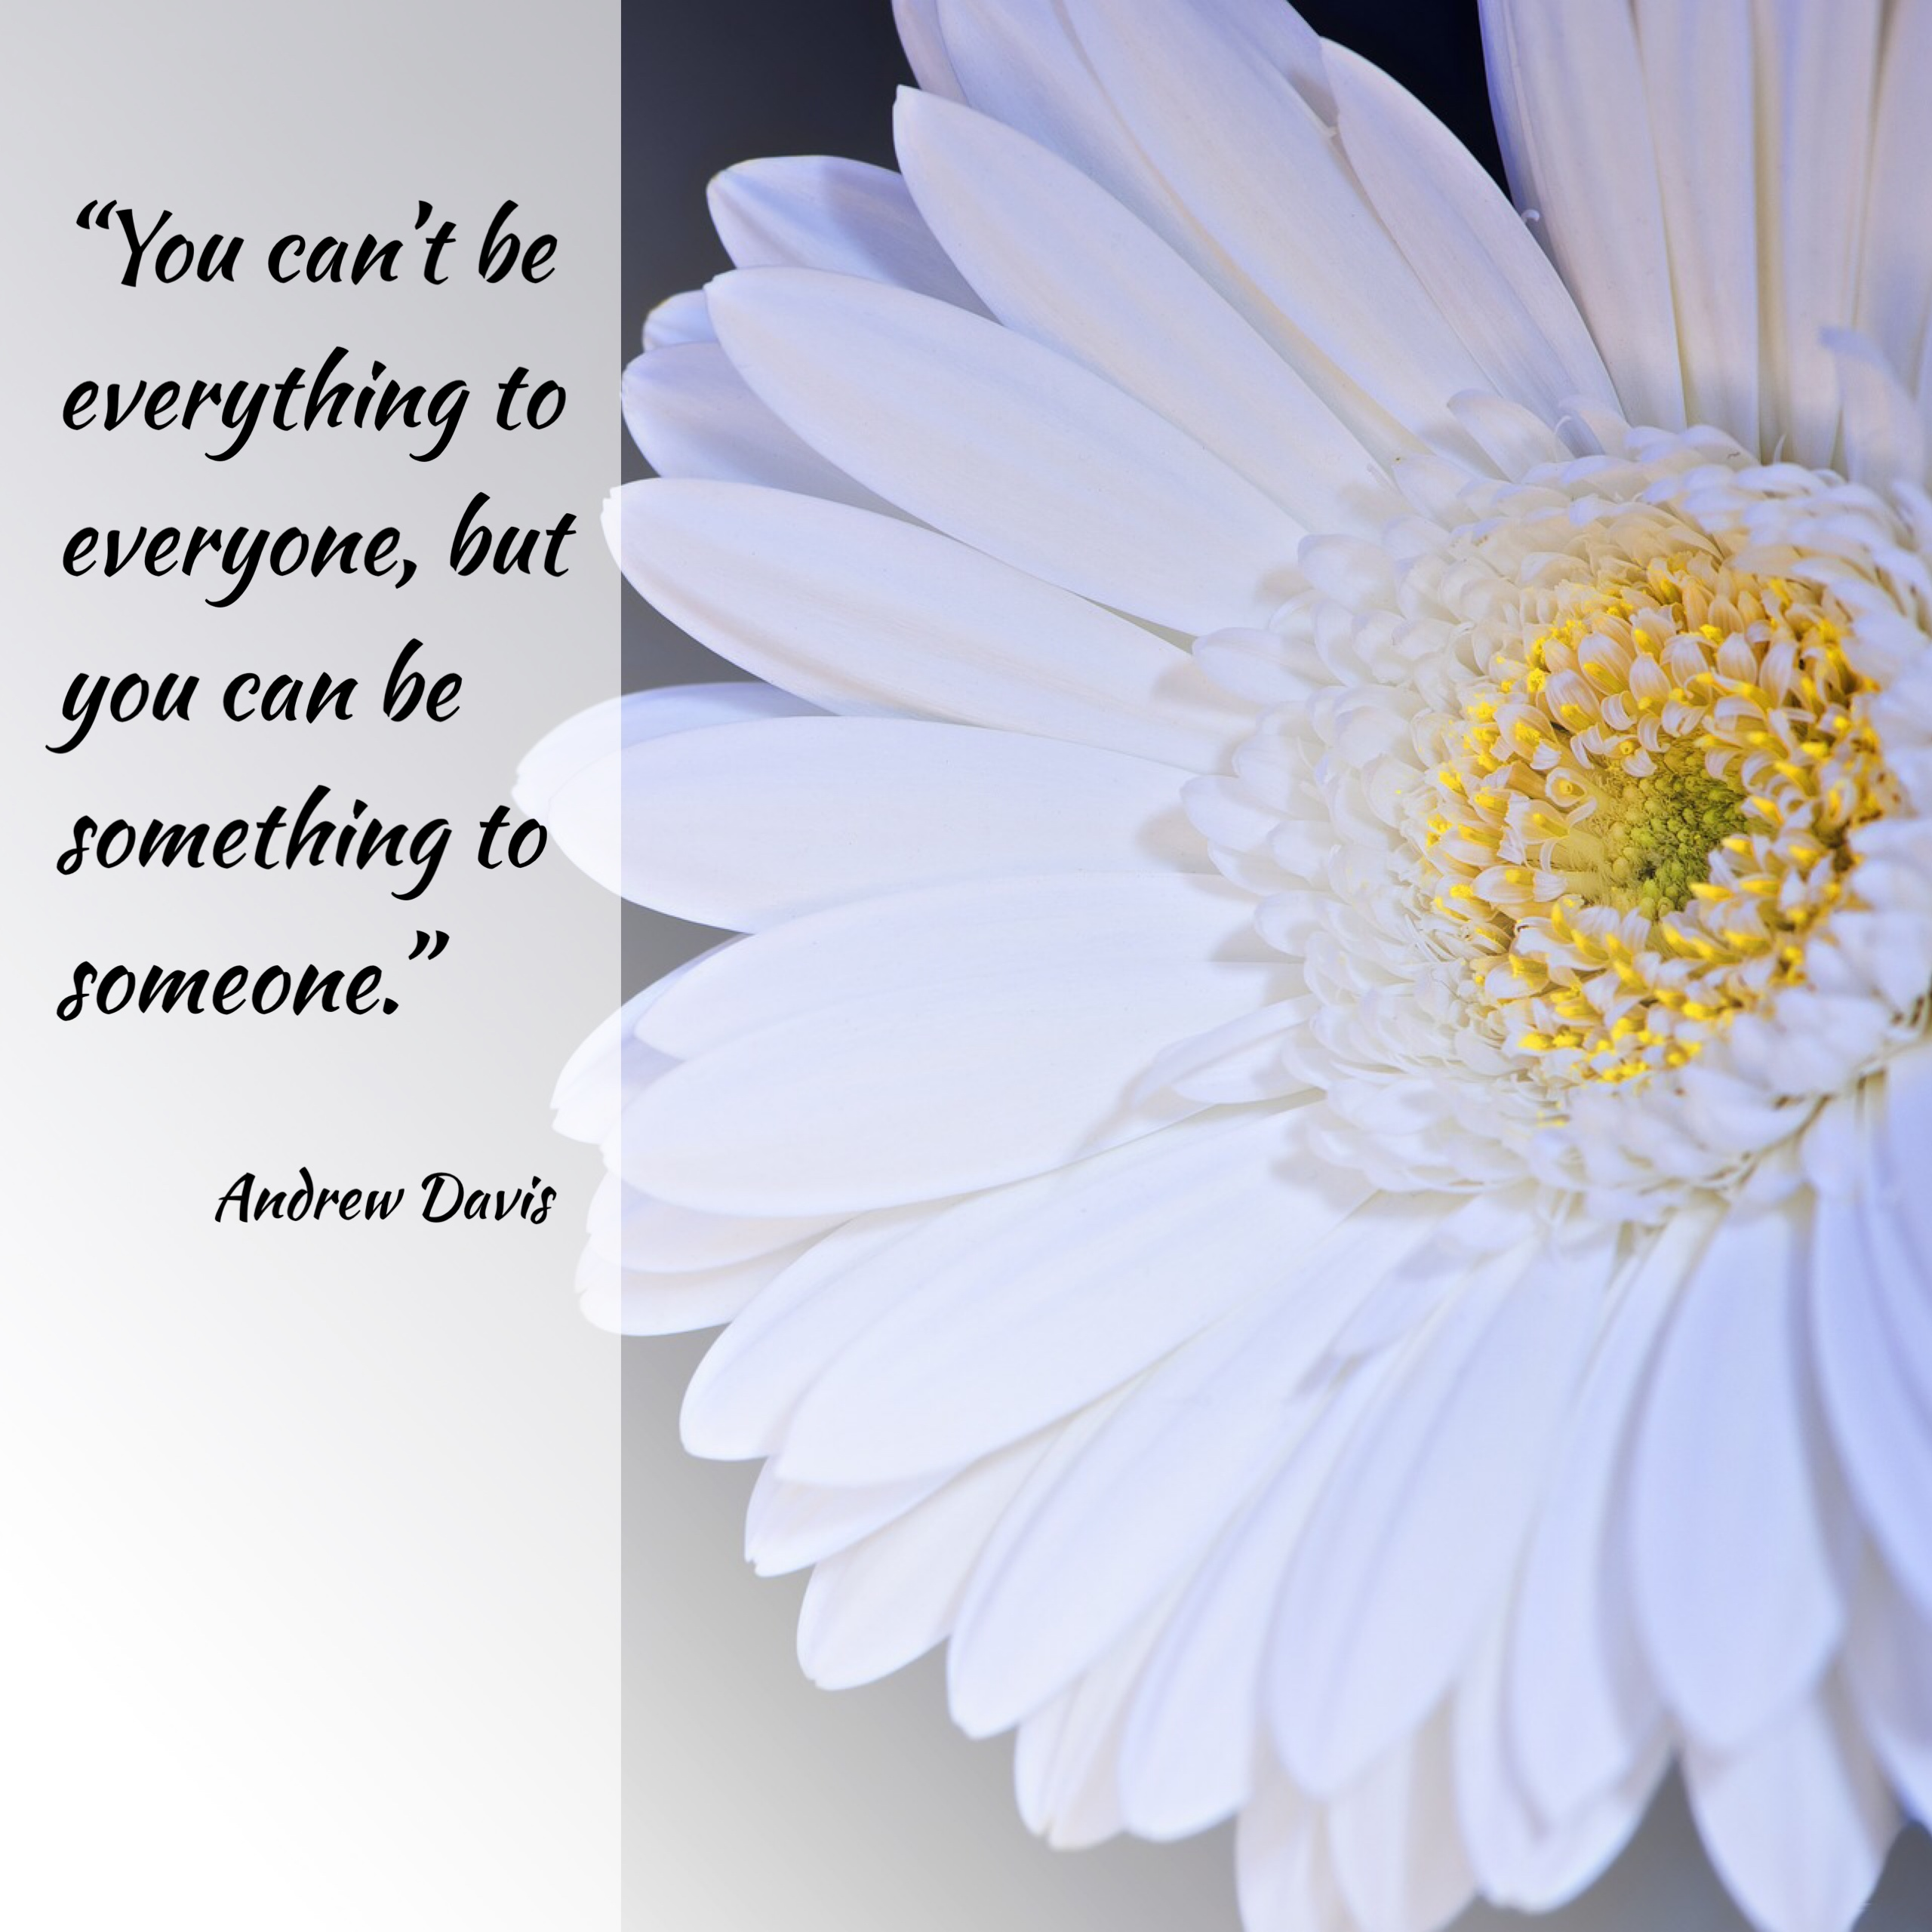 """You can't be everything to everyone, but you can be something to someone."" ~Andrew Davis"